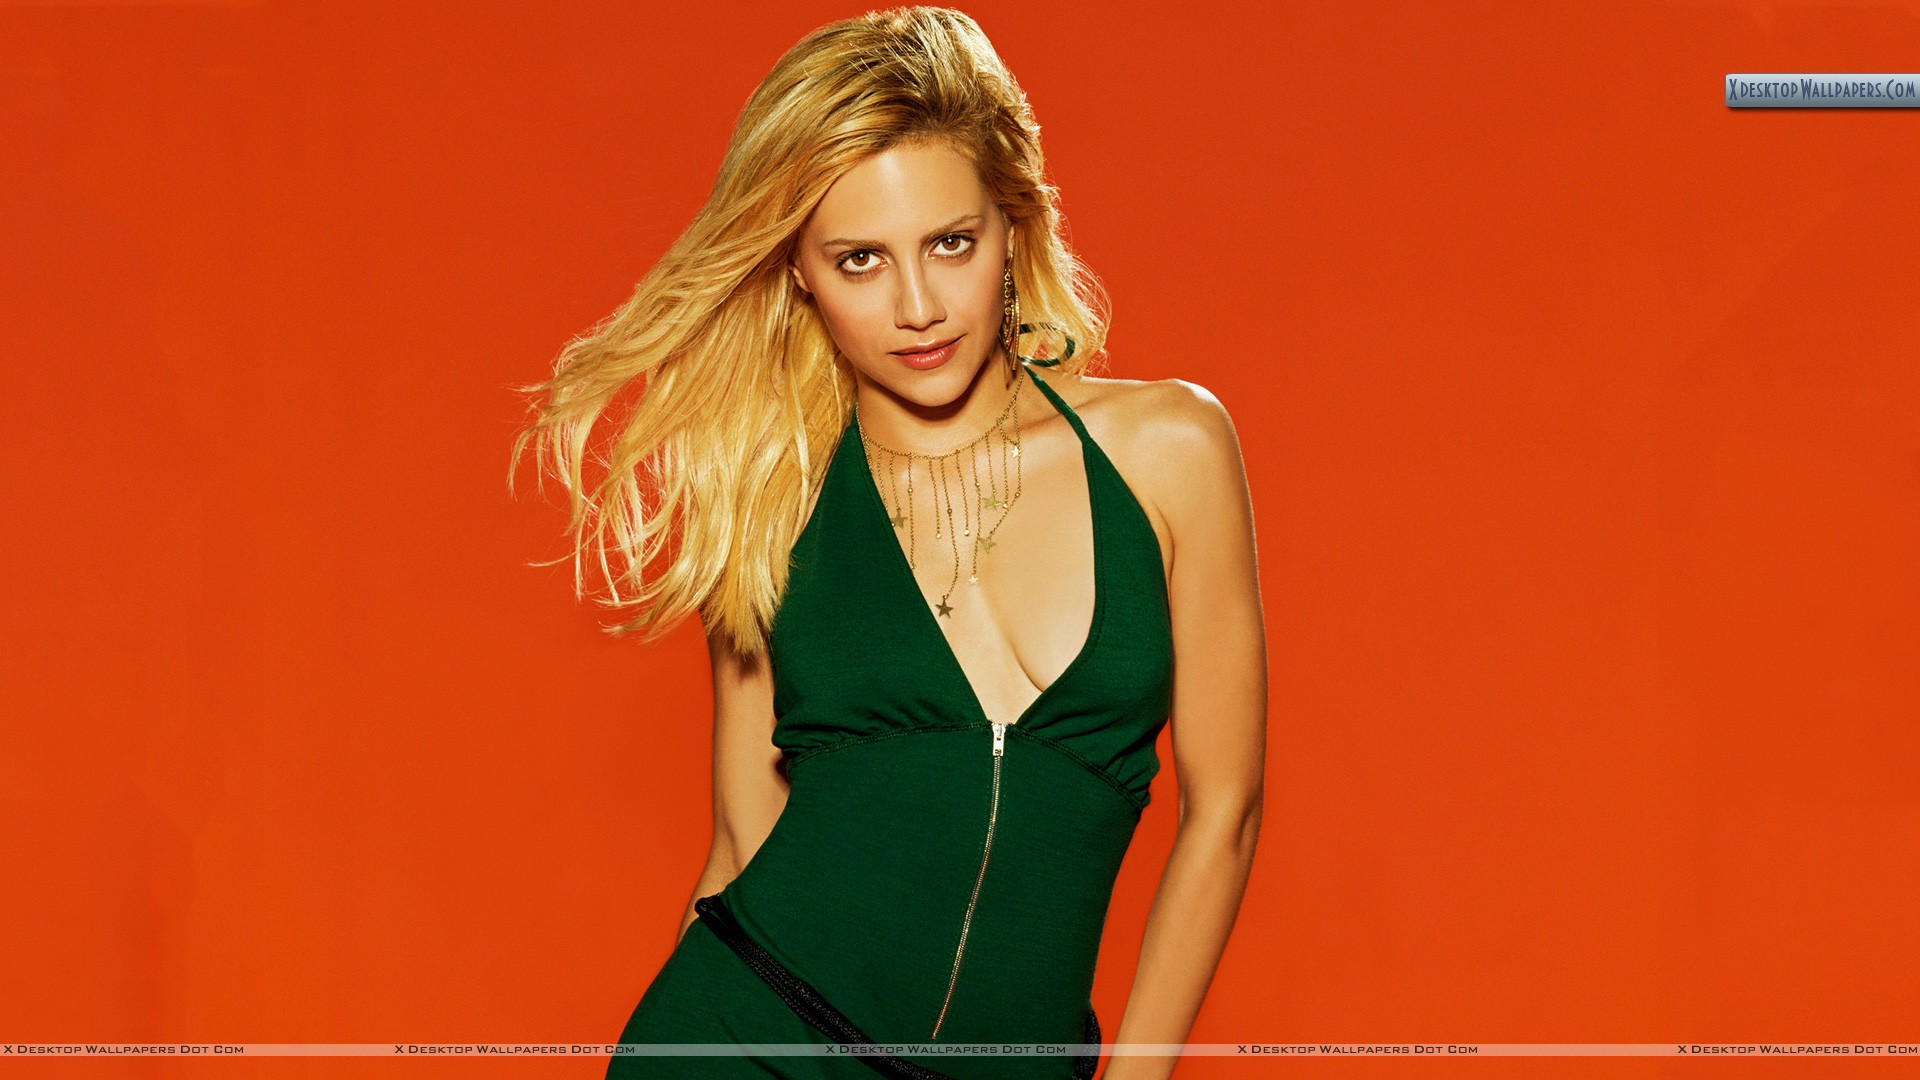 1920x1080 - Brittany Murphy Wallpapers 32